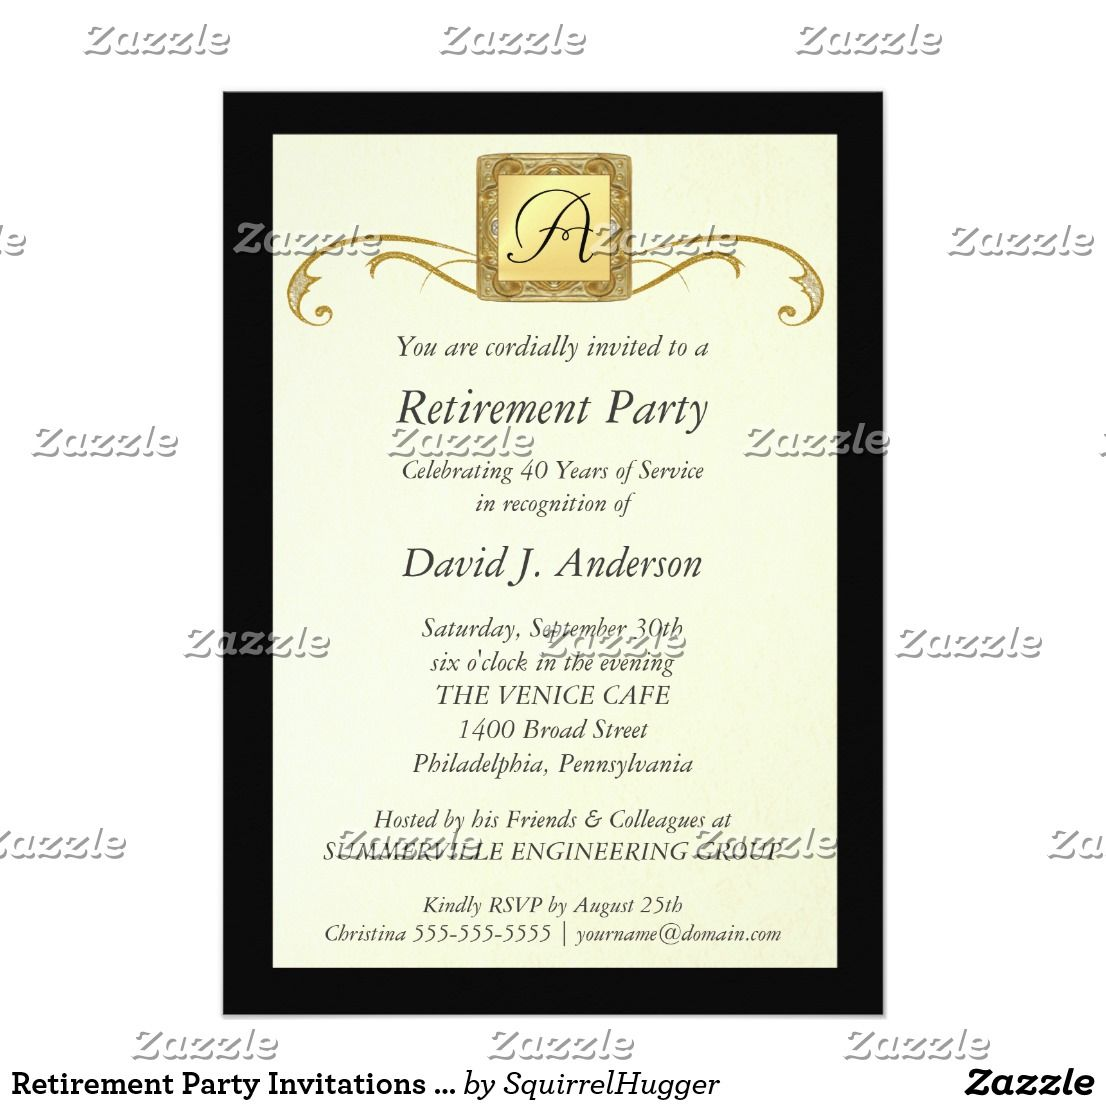 Retirement Party Invitations - Formal Photo Invite | Retirement parties